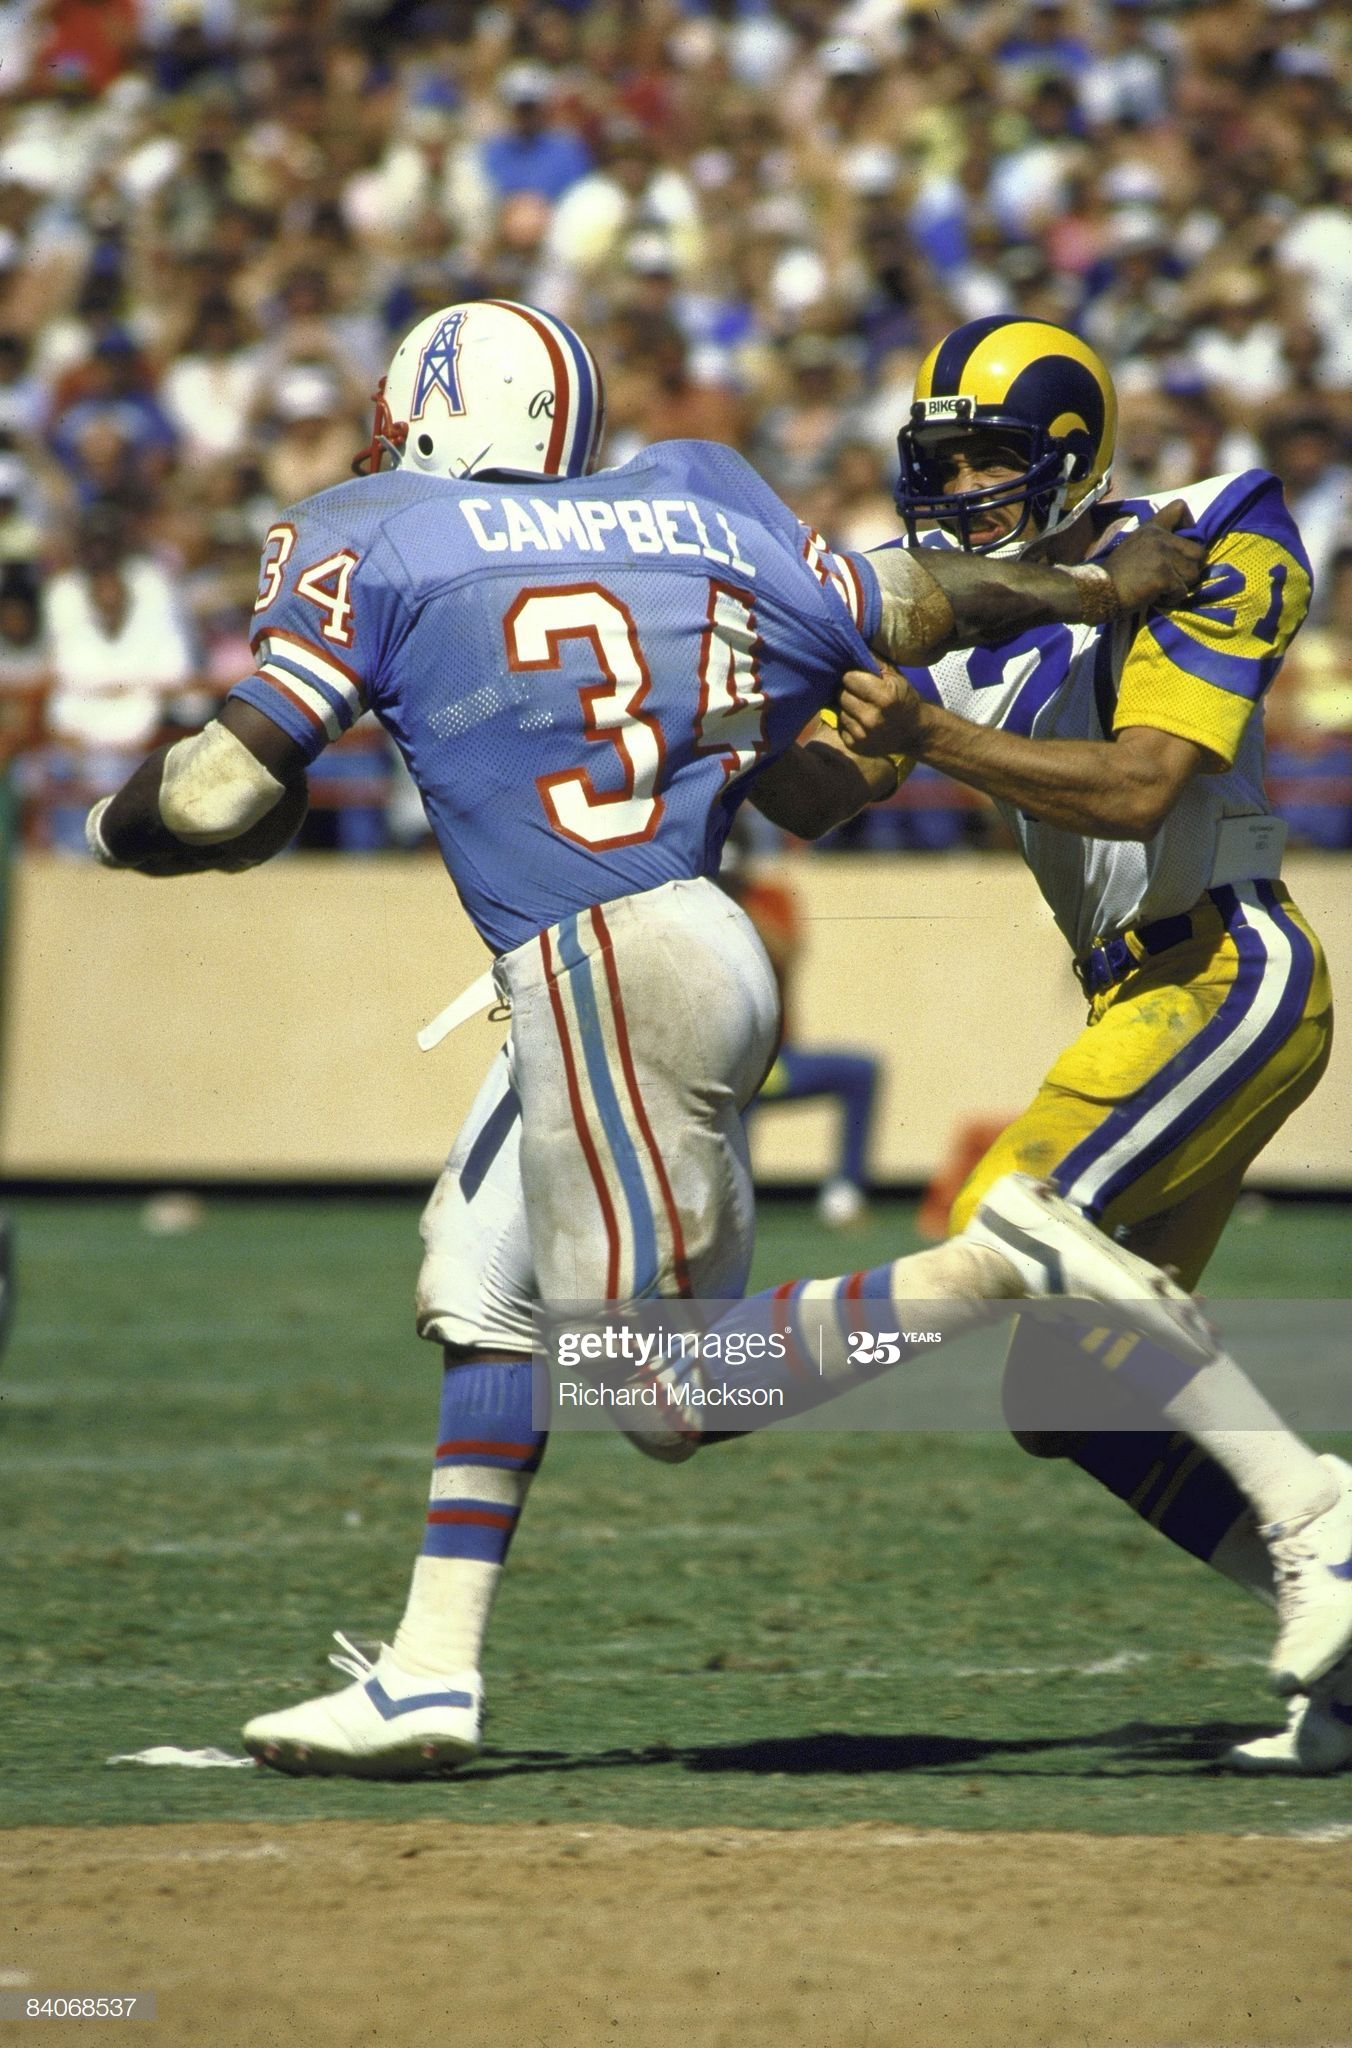 Houston Oilers Earl Campbell In Action Rushing Vs Los Angeles Rams In 2020 Houston Oilers Earl Campbell Nfl History